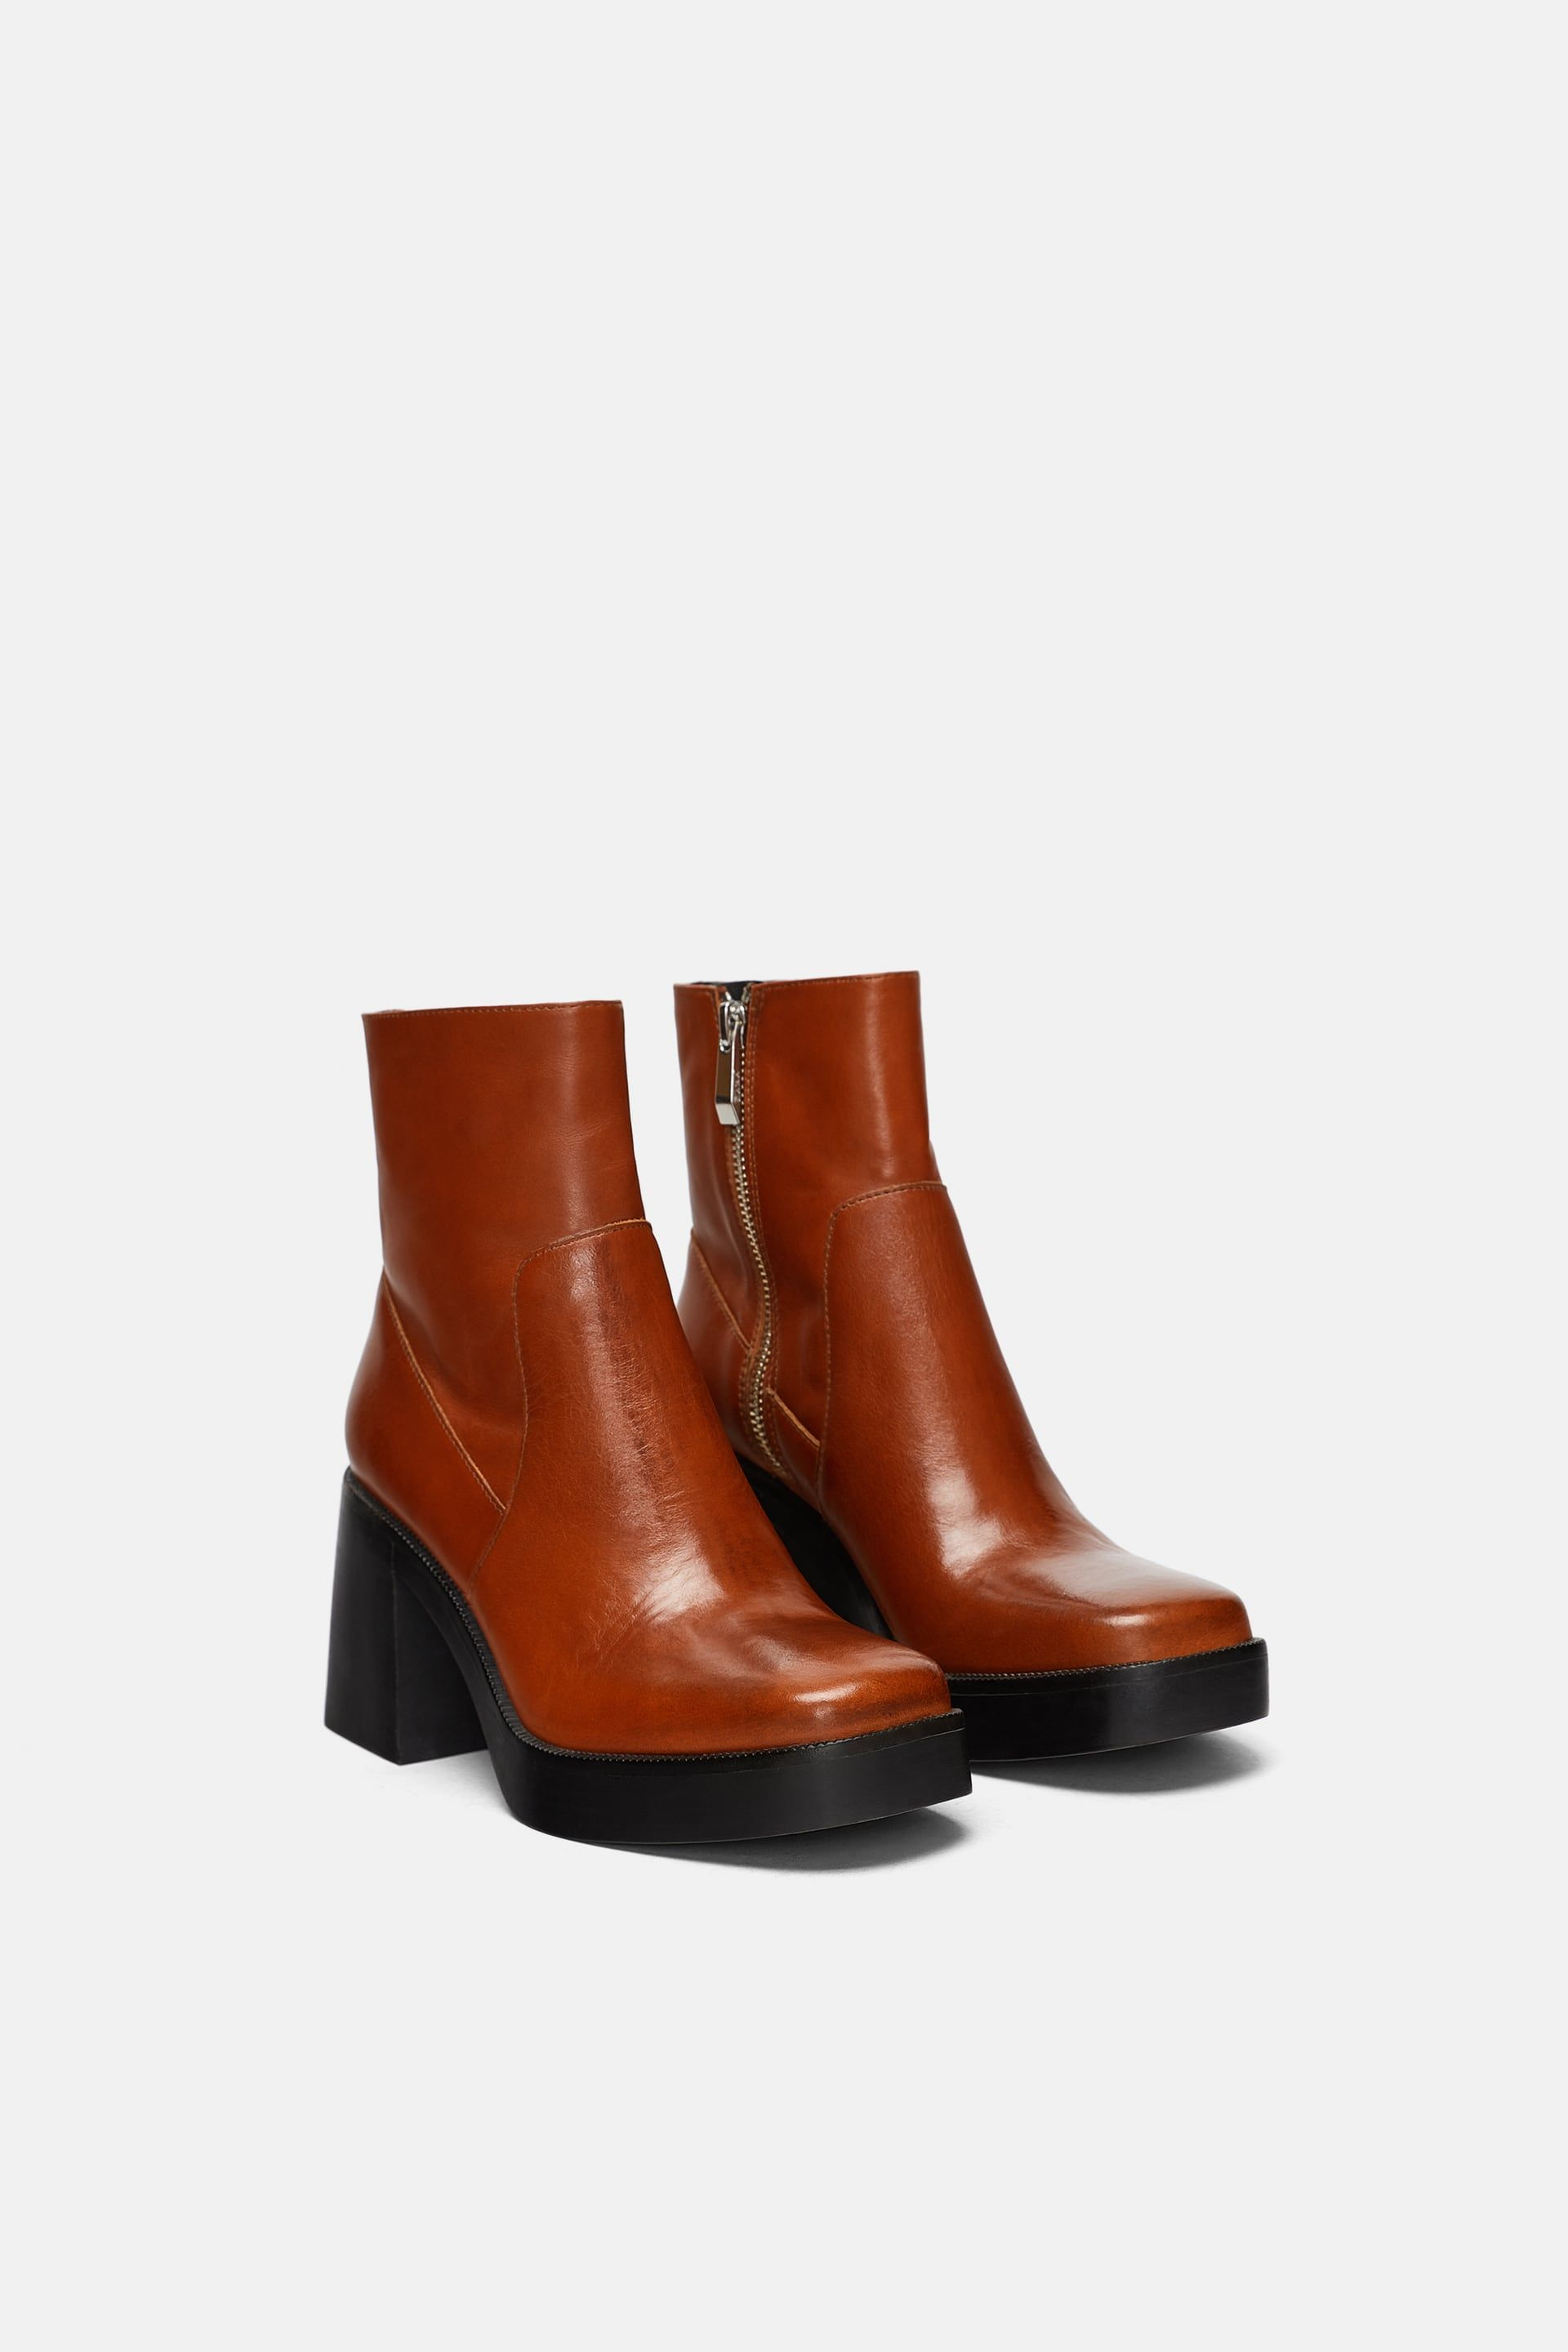 c03dd214 Image 1 of from Zara. ZARA - WOMAN - LEATHER TAPERED HEEL ANKLE BOOTS ...